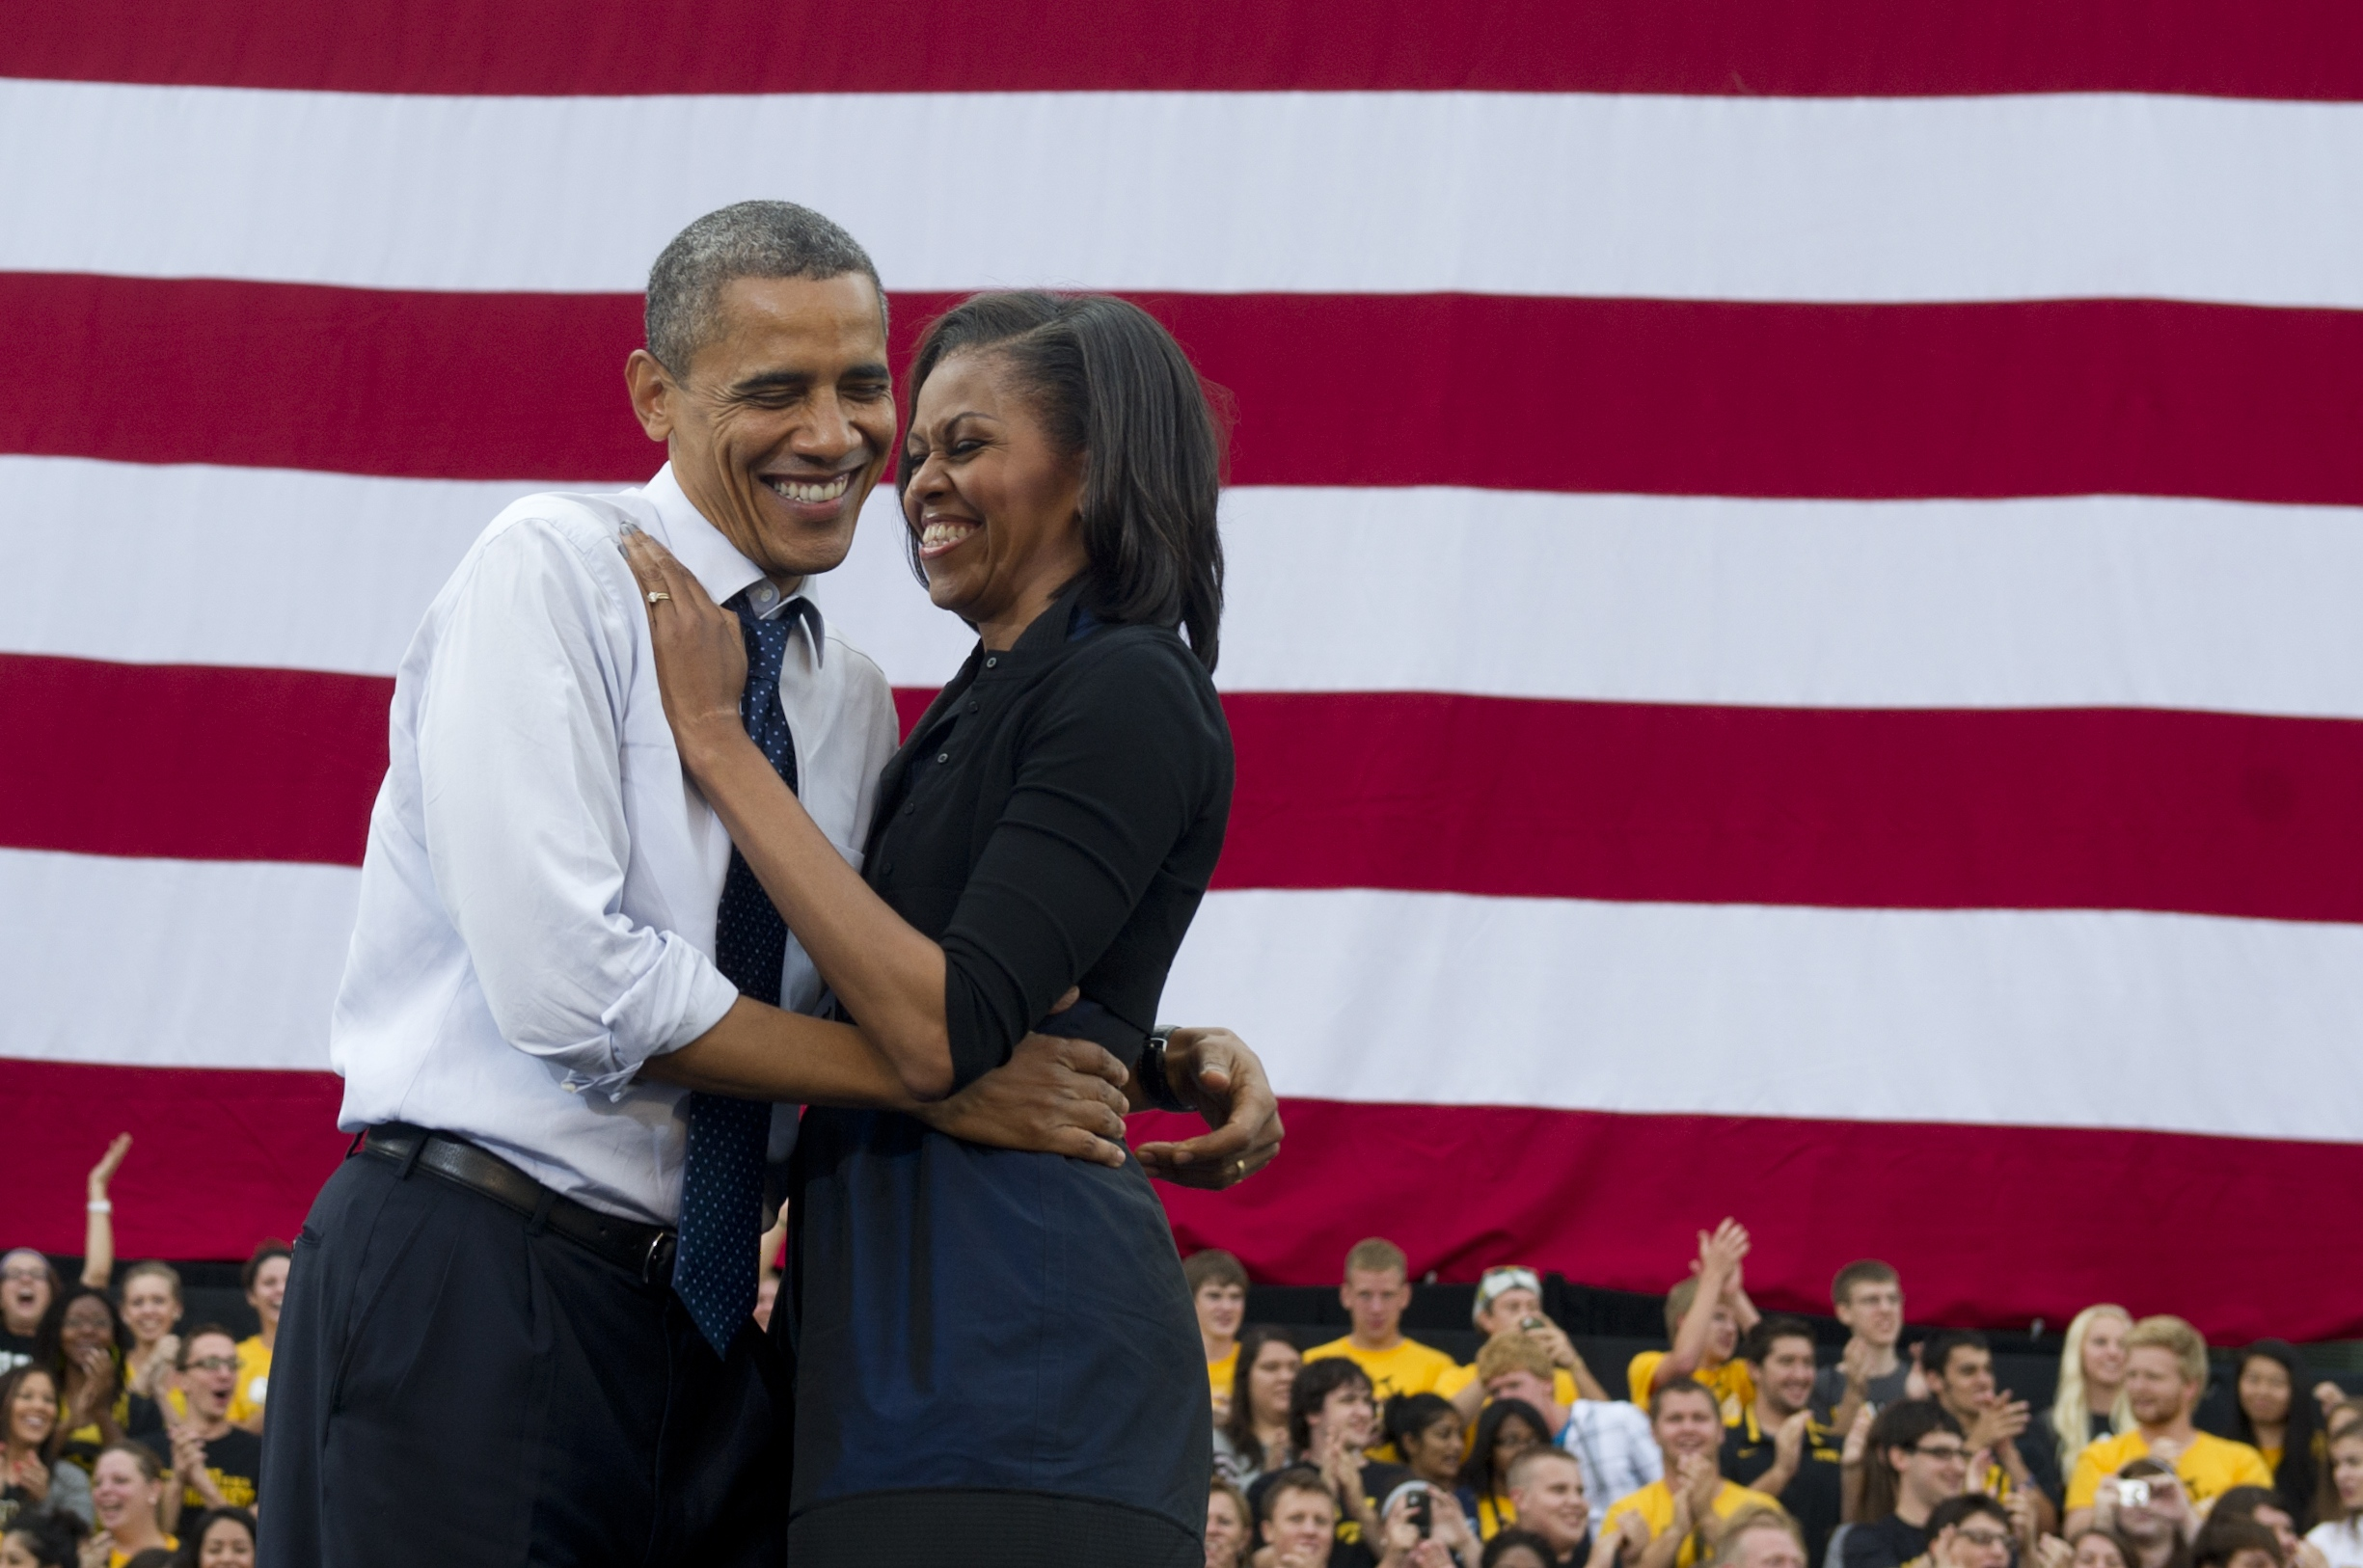 """He also created a college tax credit that lets families save up to $10,000 over four years to help send their kids to college. Last year, that credit helped more than nine million college students and their families pay for tuition.  And to help young people who are financing their education with loans, Barack fought to keep federal student loan interest rates from doubling this past Summer.   Barack and I know from our own experiences just how important a good education is — and how hard it can be to pay for it. And I'm really proud of how hard he's fighting to put affordable education back within reach for young people in our country."" It's not too late! You can ask the first lady a question, too. We are still taking questions for this series! There are three ways to participate: 1. You can leave your question in the comments section here on PopSugar.com 2. You can tweet using the hashtag #POPSUGAR2012 3. You can leave your question in the tab on our PopSugar Facebook page We're so excited to hear what's on your mind and to speak to First Lady Michelle Obama together."